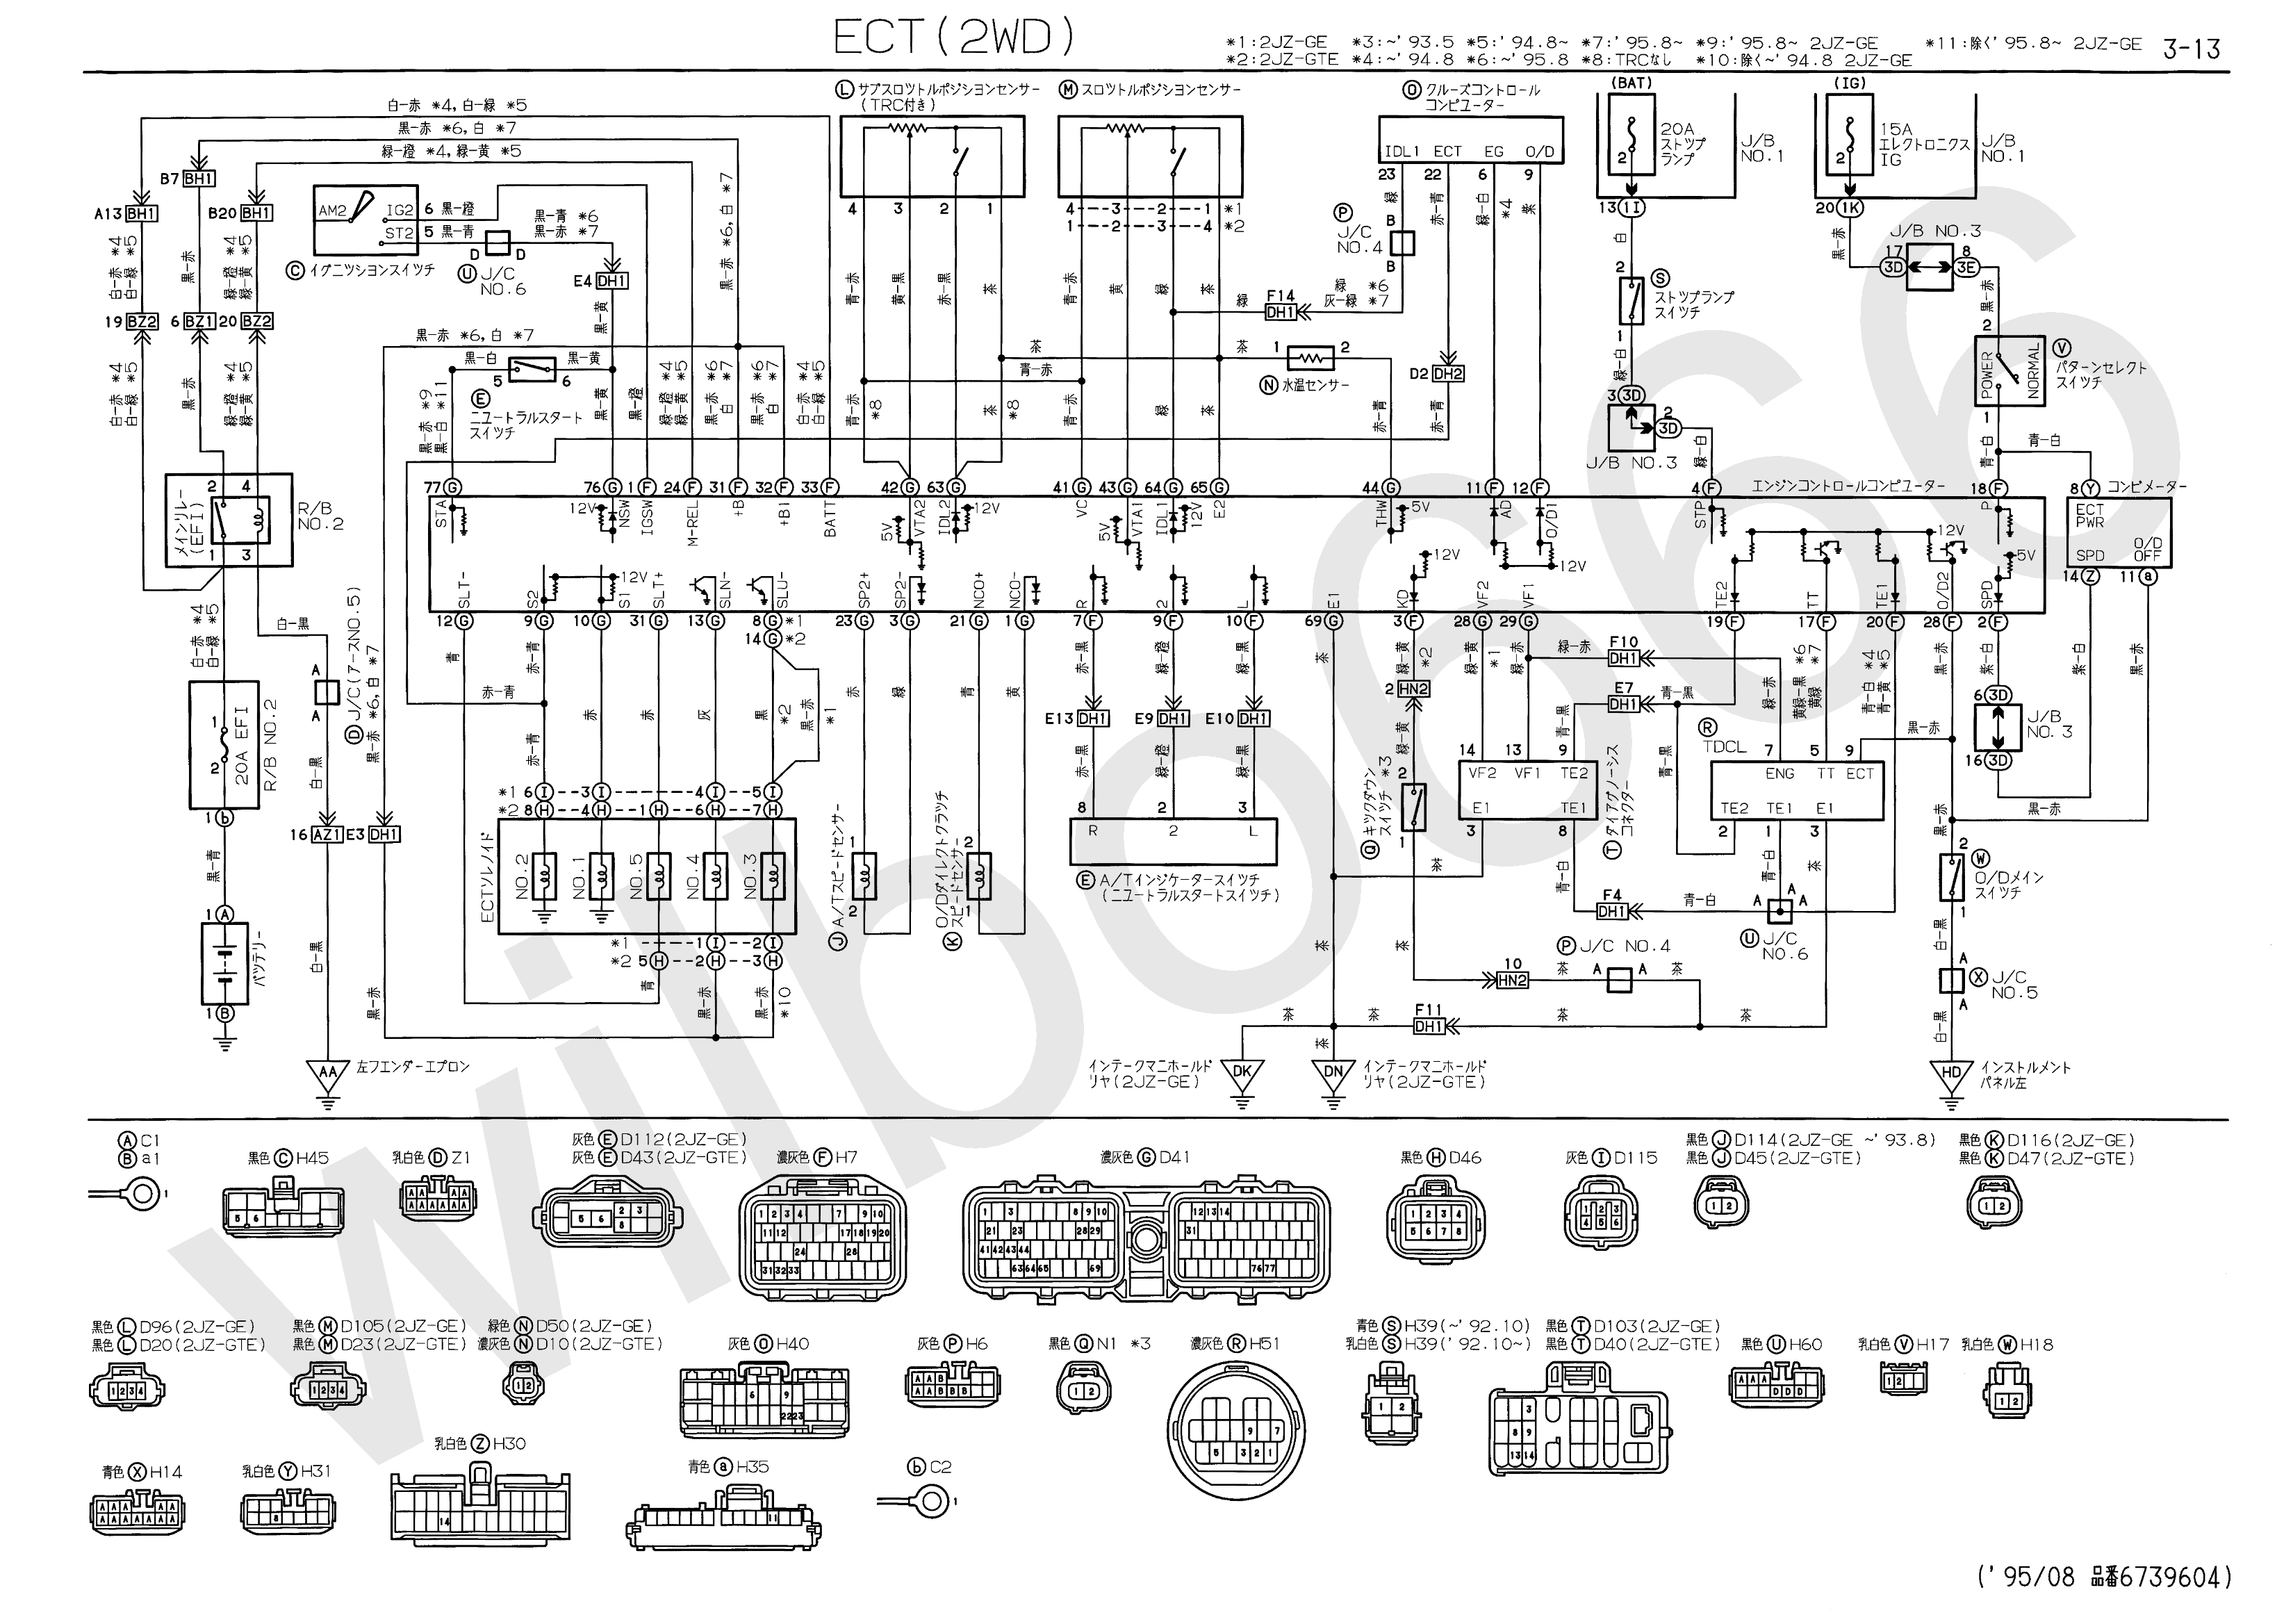 Fisher Dvc 2000 Wiring Diagram further 1975 K20 Wiring Harness likewise P 0996b43f80cb238a in addition 2JZ GTE 20JZS147 20Aristo 20Engine 20Wiring in addition 4i57s 2003 Chevrolet Impala Dashboard Light This Dash Light. on chevy wiring harness diagram